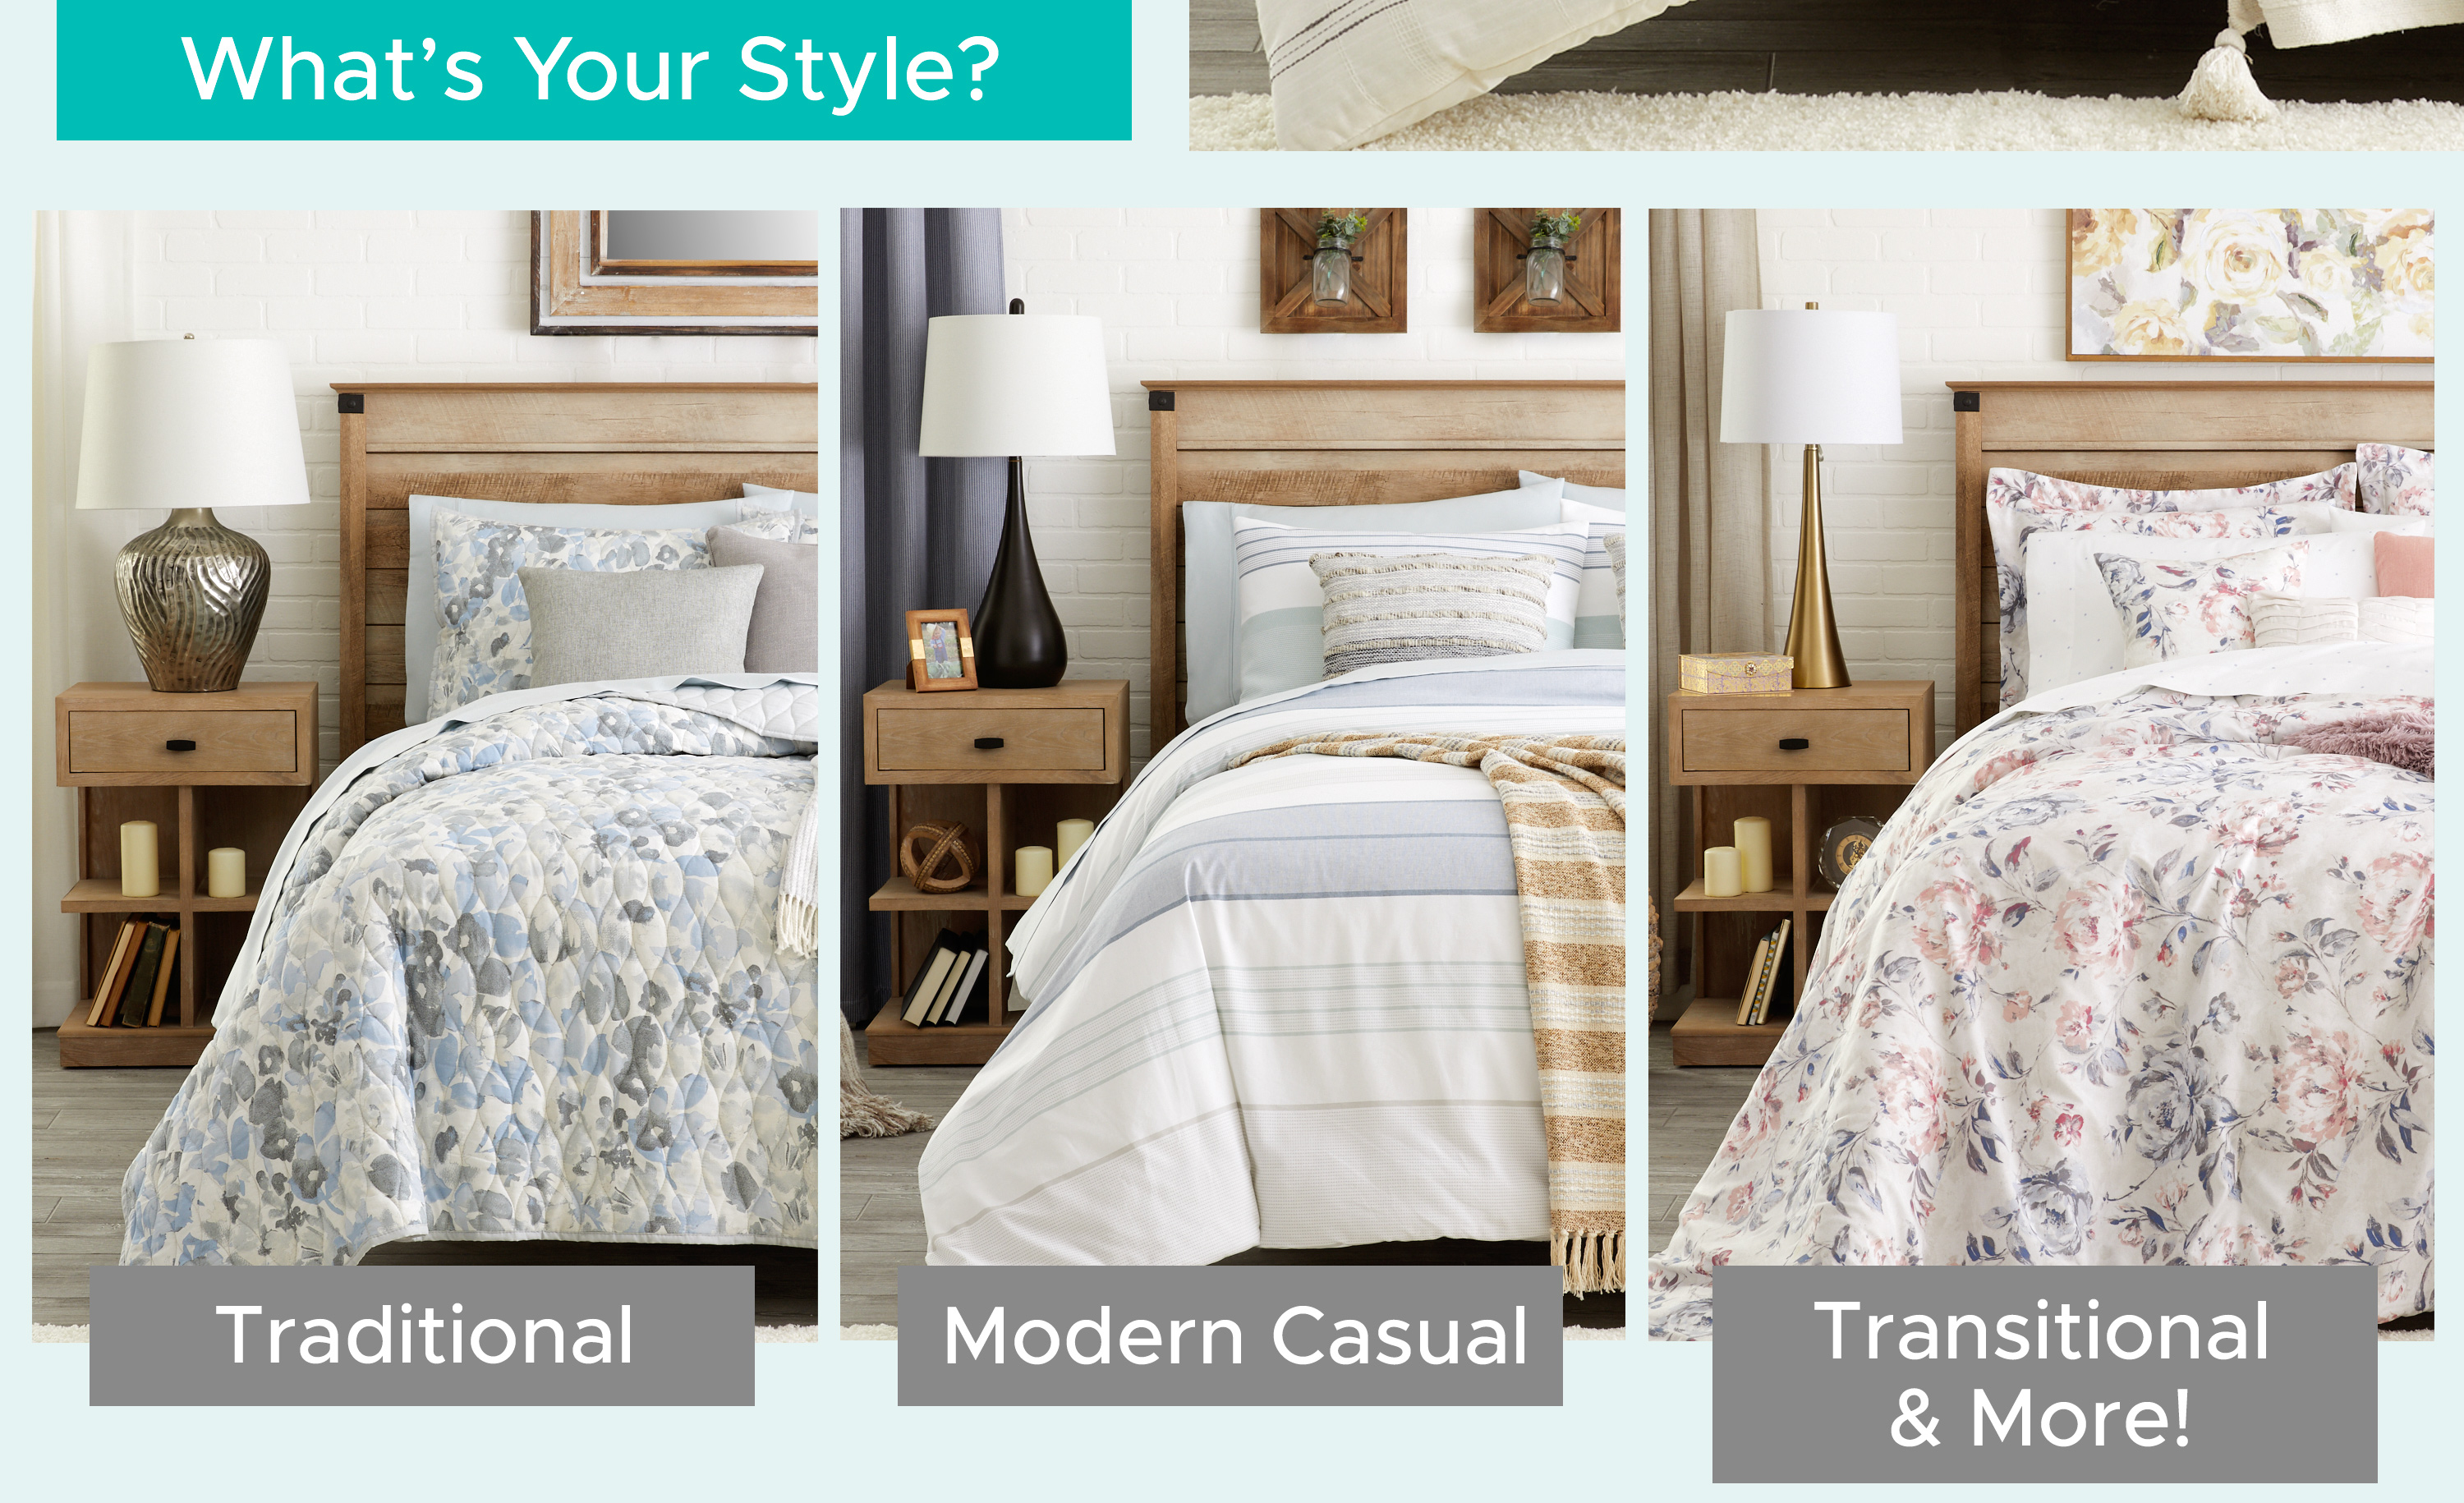 What's Your Style? Traditional, Modern Casual, Transitional & More!